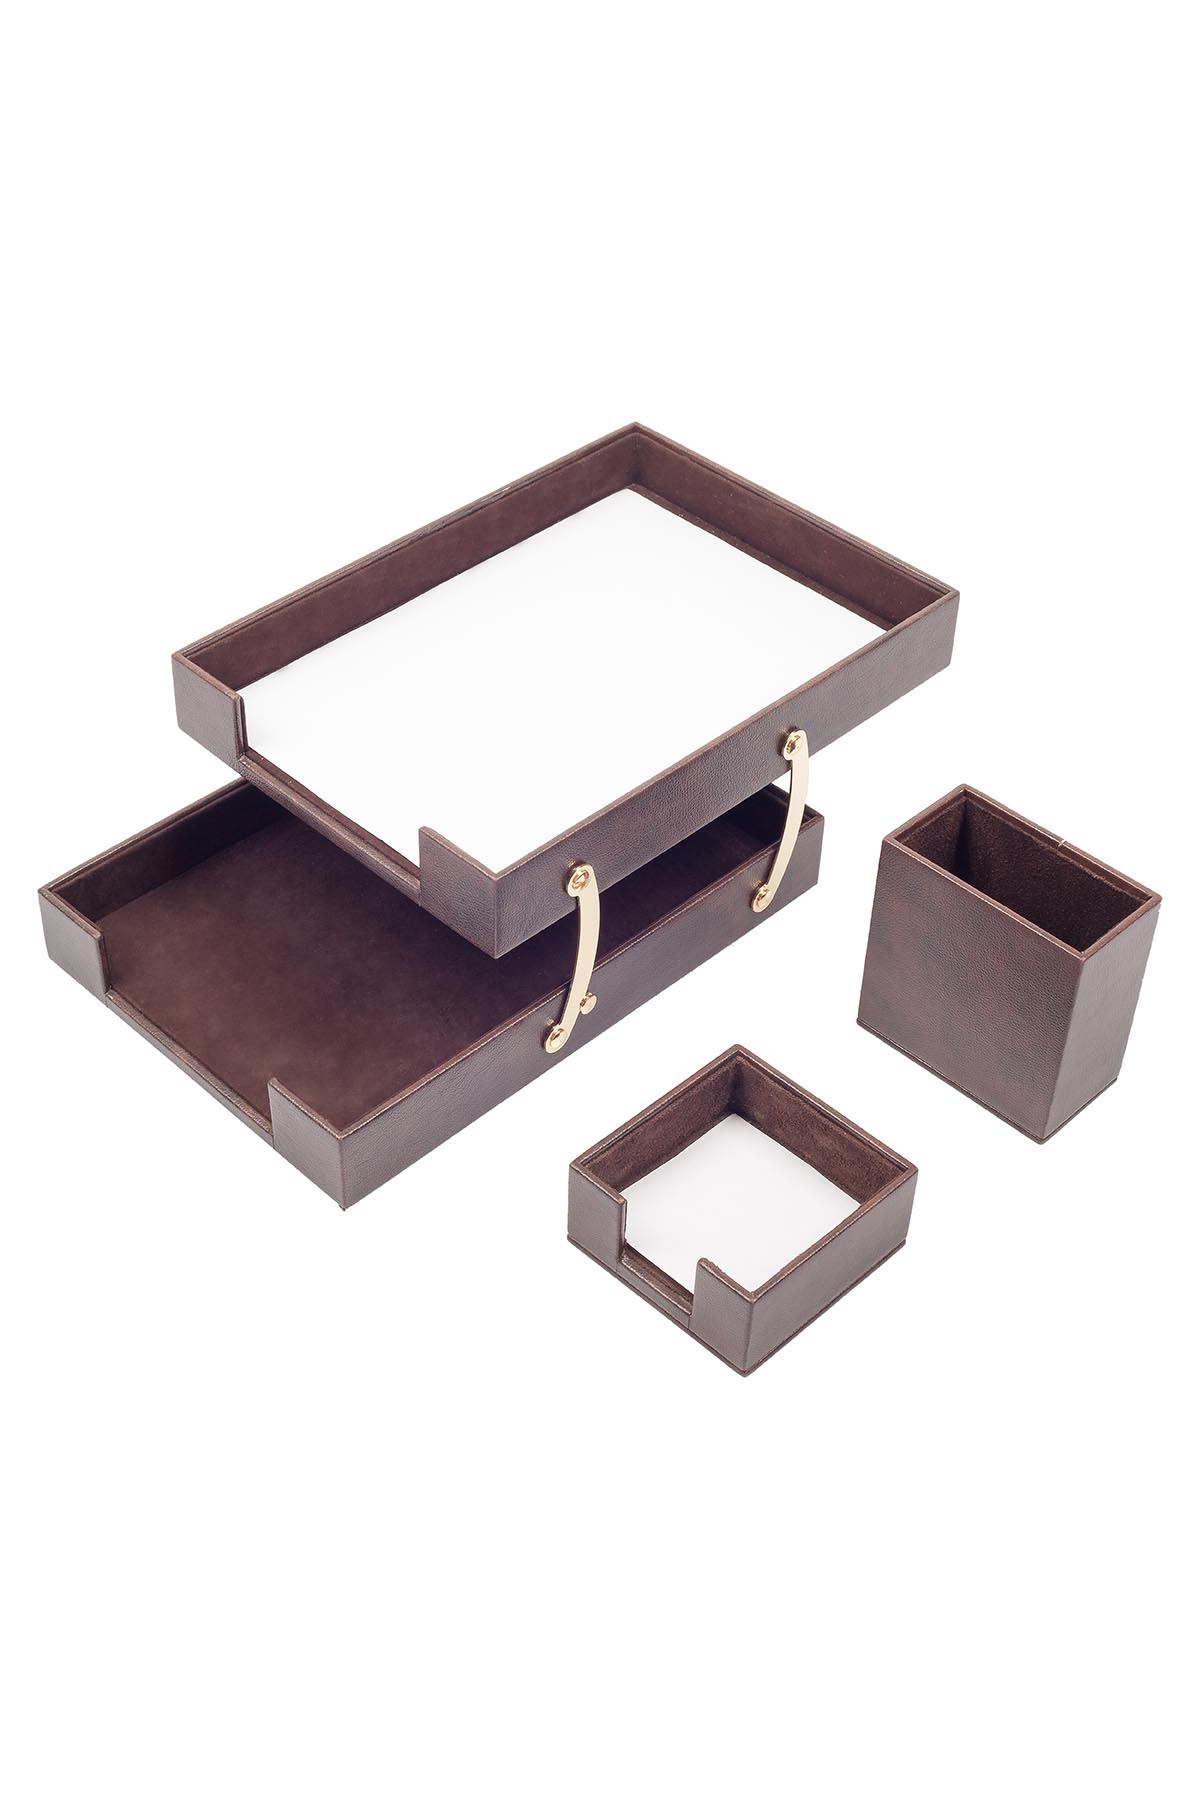 Double Document Tray With 2 Accessories Brown| Desk Set Accessories | Desktop Accessories | Desk Accessories | Desk Organizers